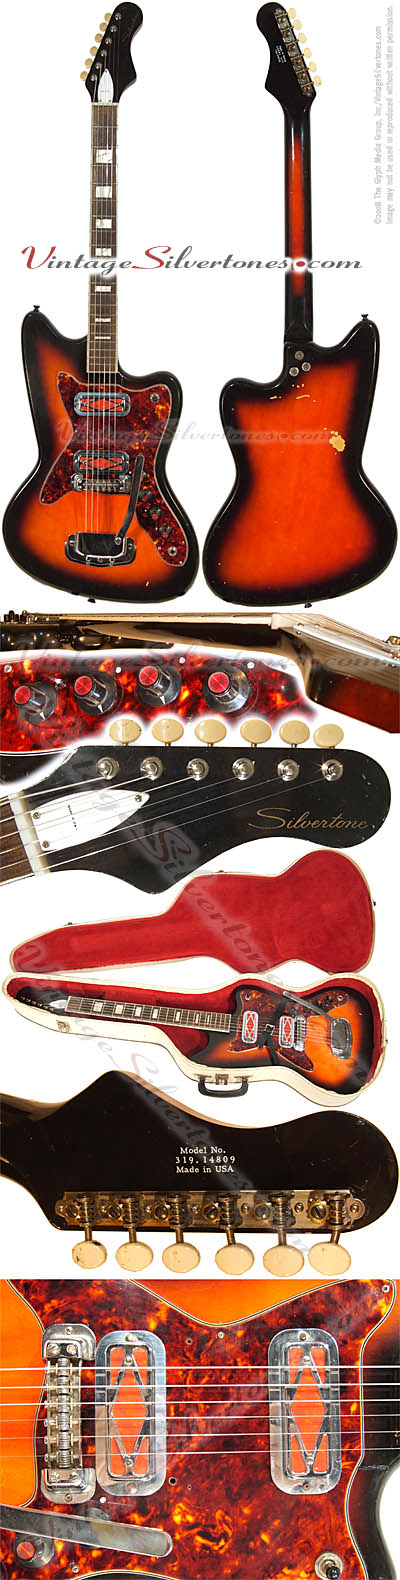 Silvertone - Harmony-made solid body, 2 pickup electric guitar in sunburst with red prickups for Christmas 1967, made in Chicago IL USA